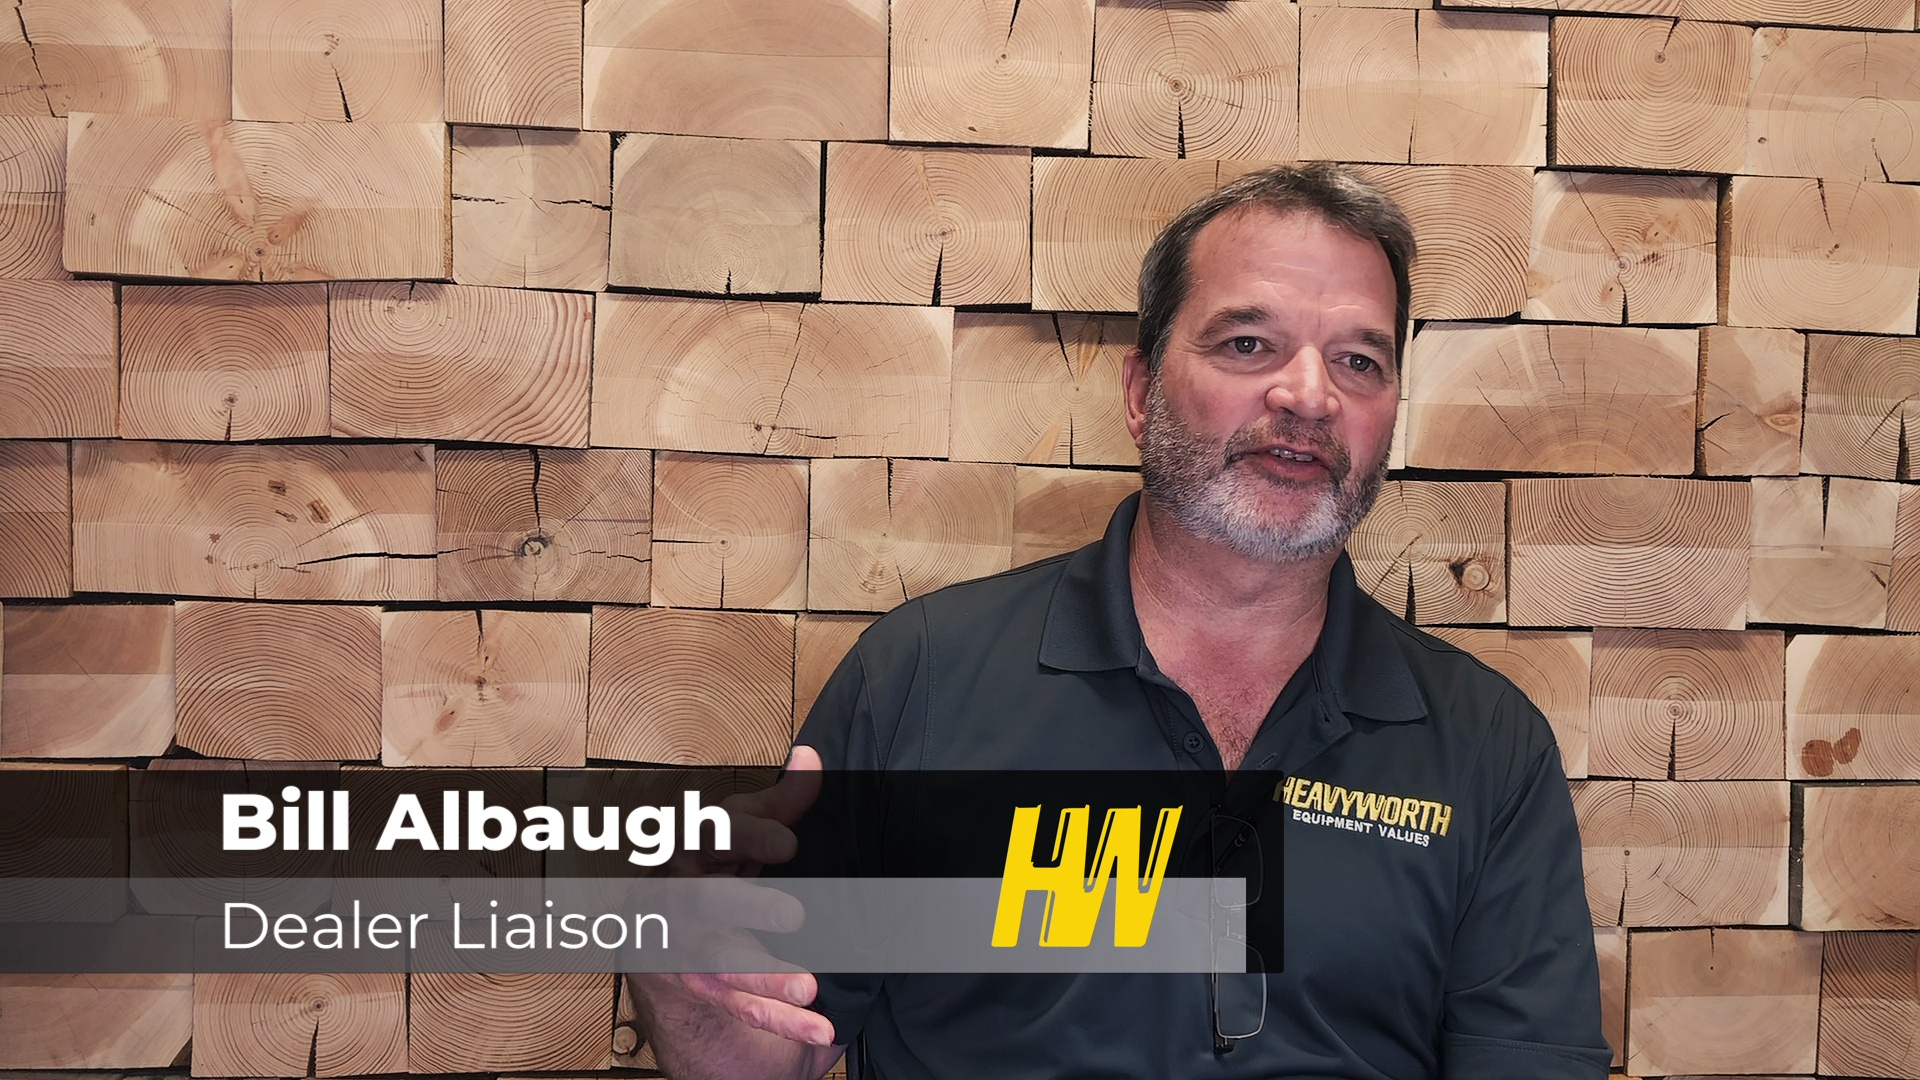 Bill Albaugh describes the process he uses to defend his valuations of heavy equipment to customers who claim the values are too low.